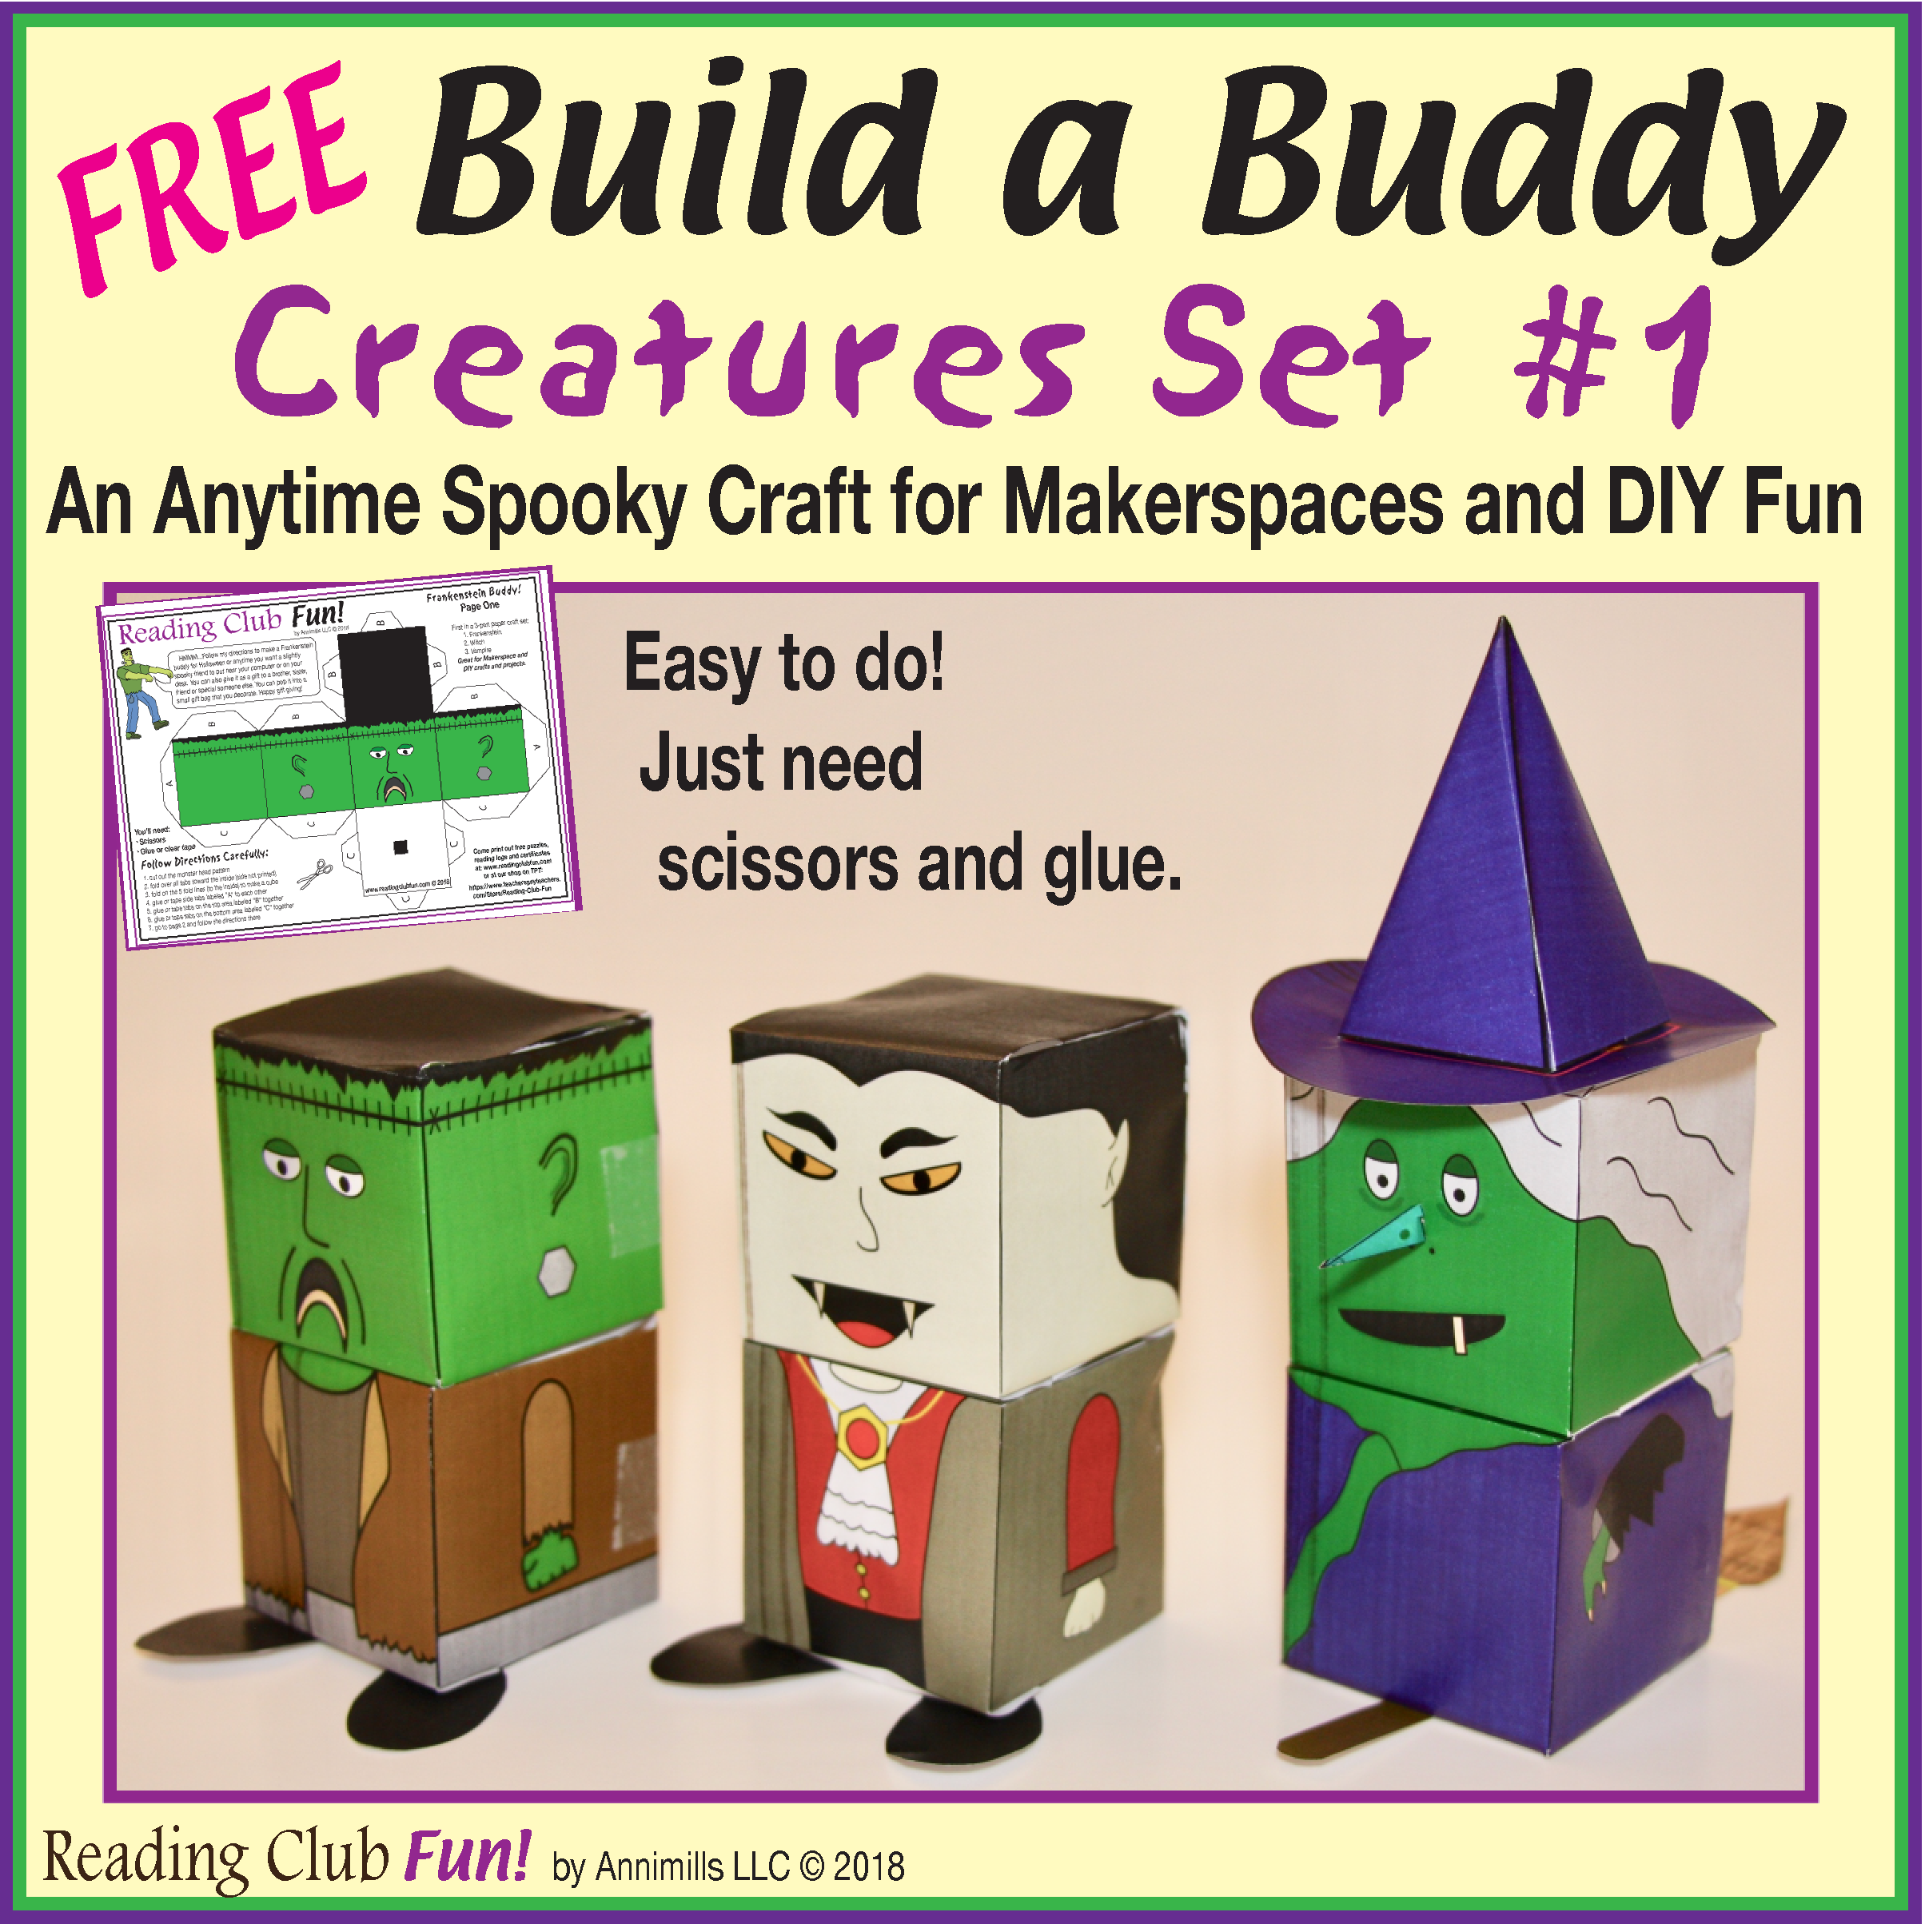 Free Kids Will Have A Great Time Building These Three